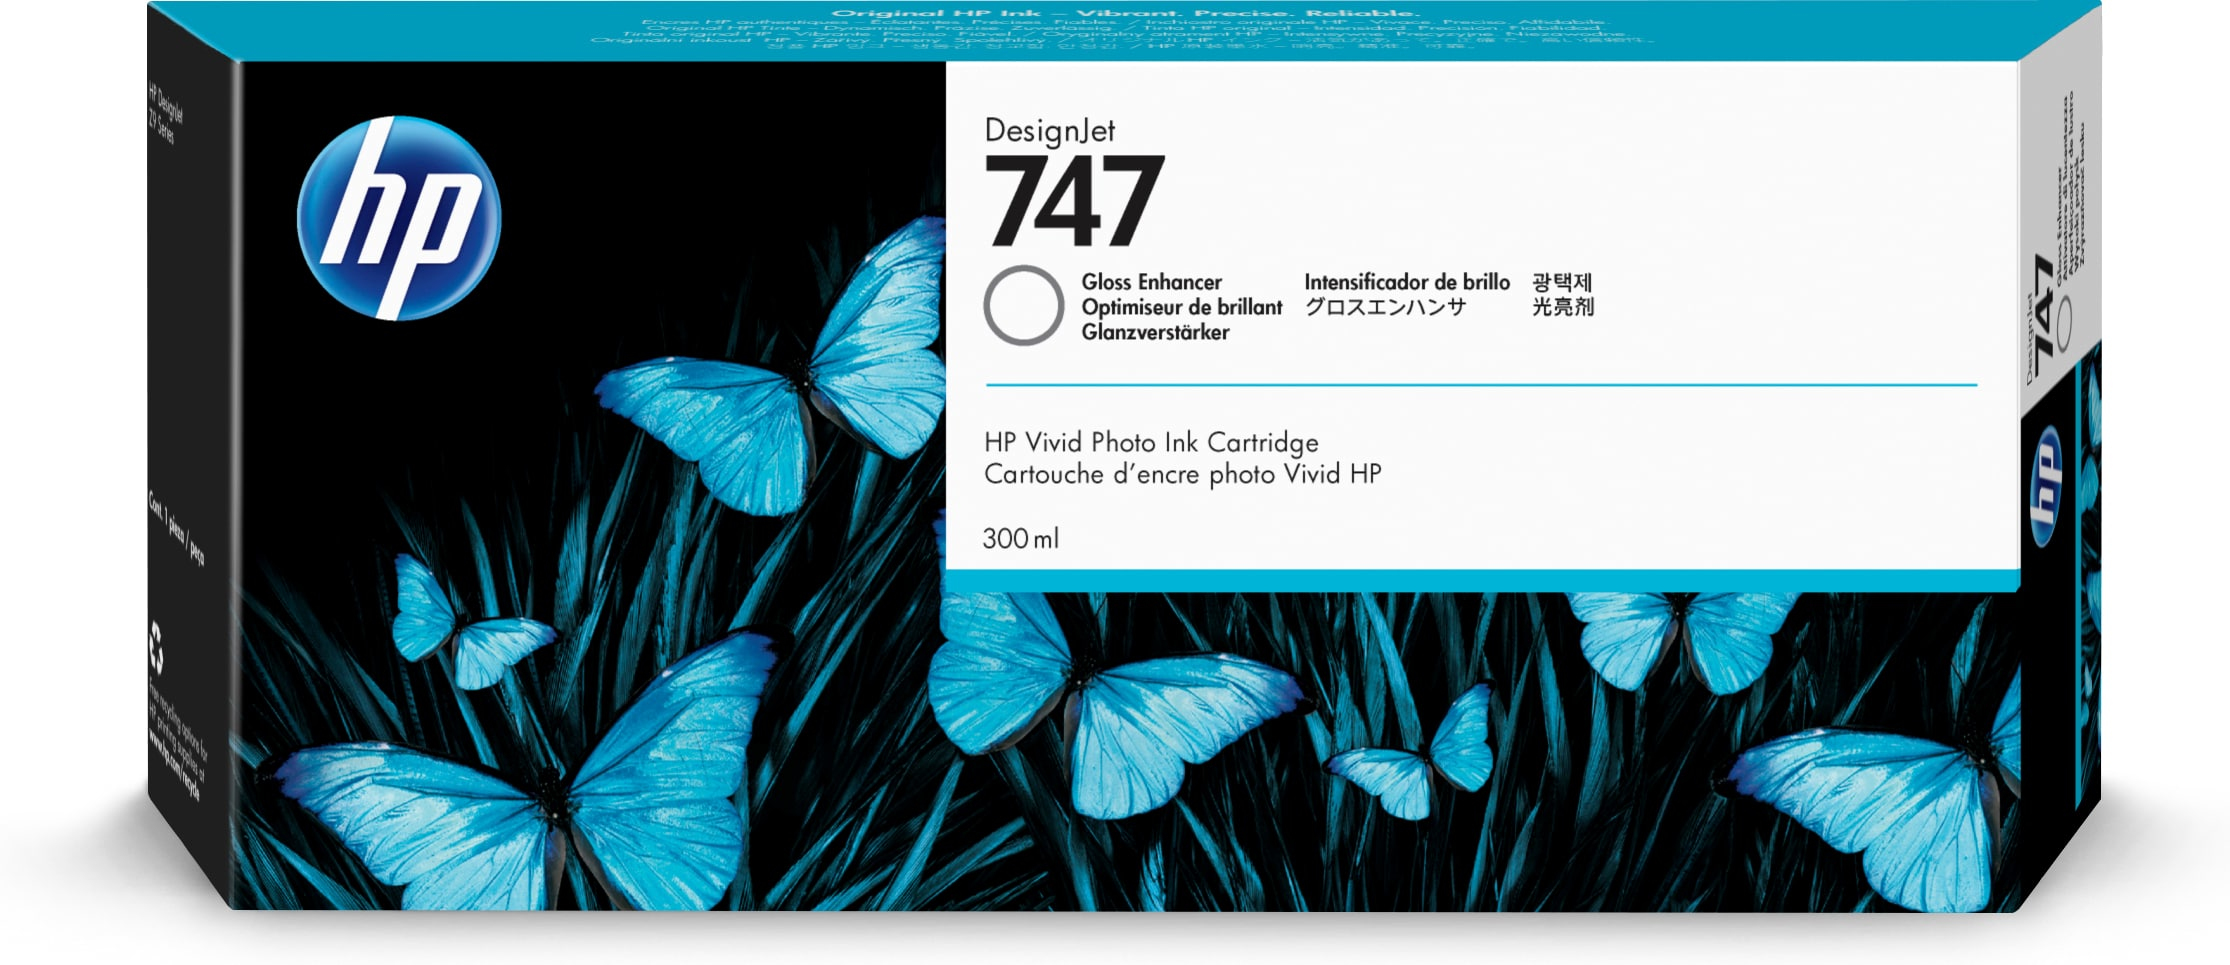 HP No. 747 Ink Cartridge Gloss Enhancer - 300ml P2v87a